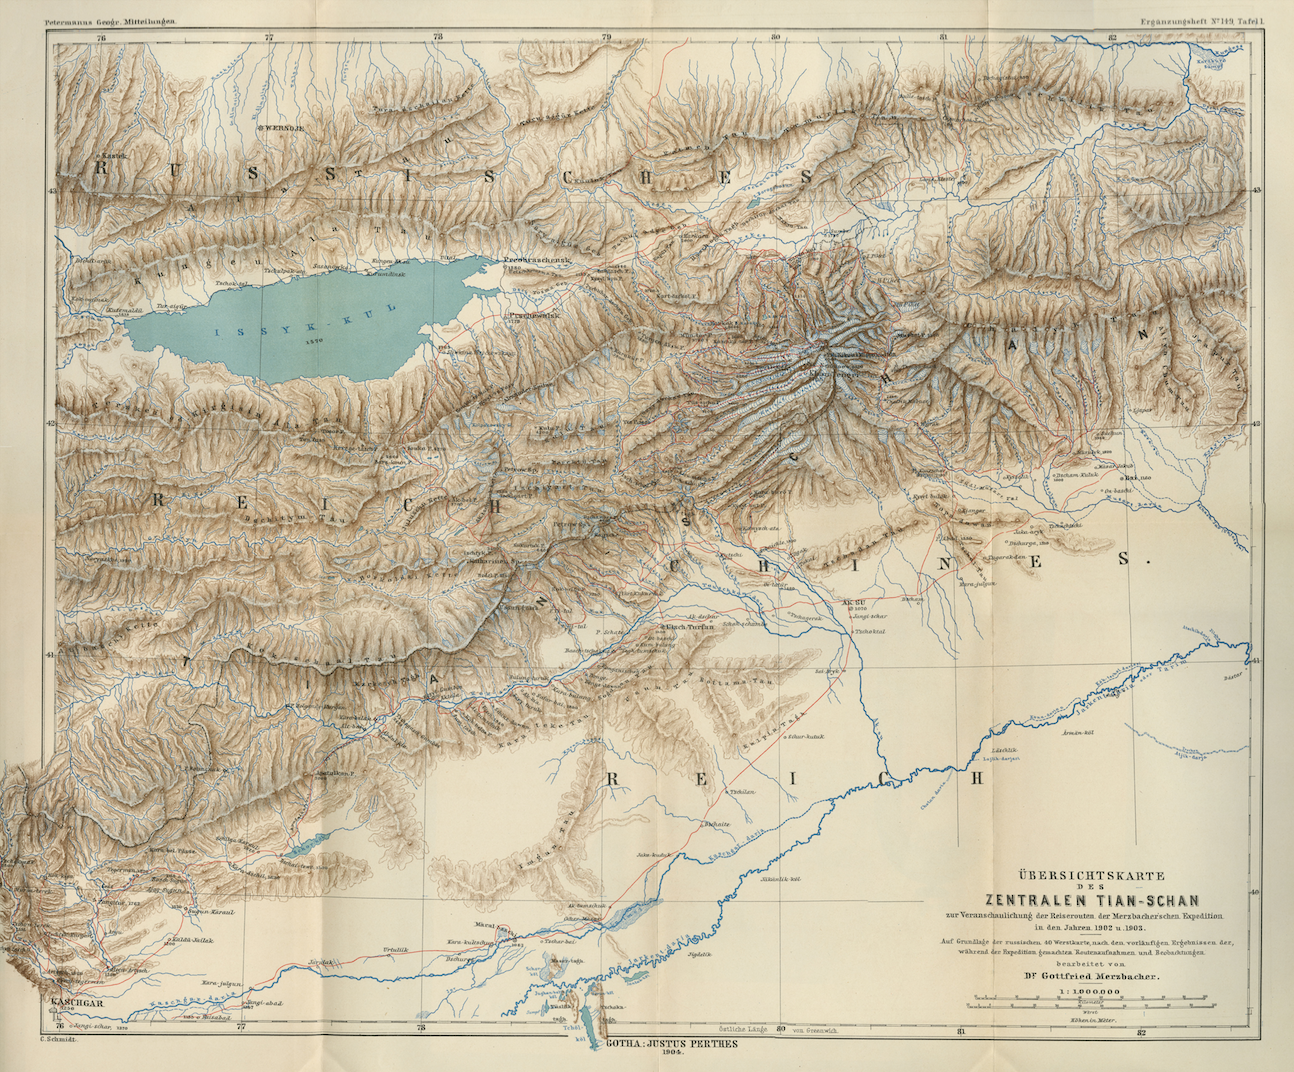 Map of Central Tian-Shan 1904